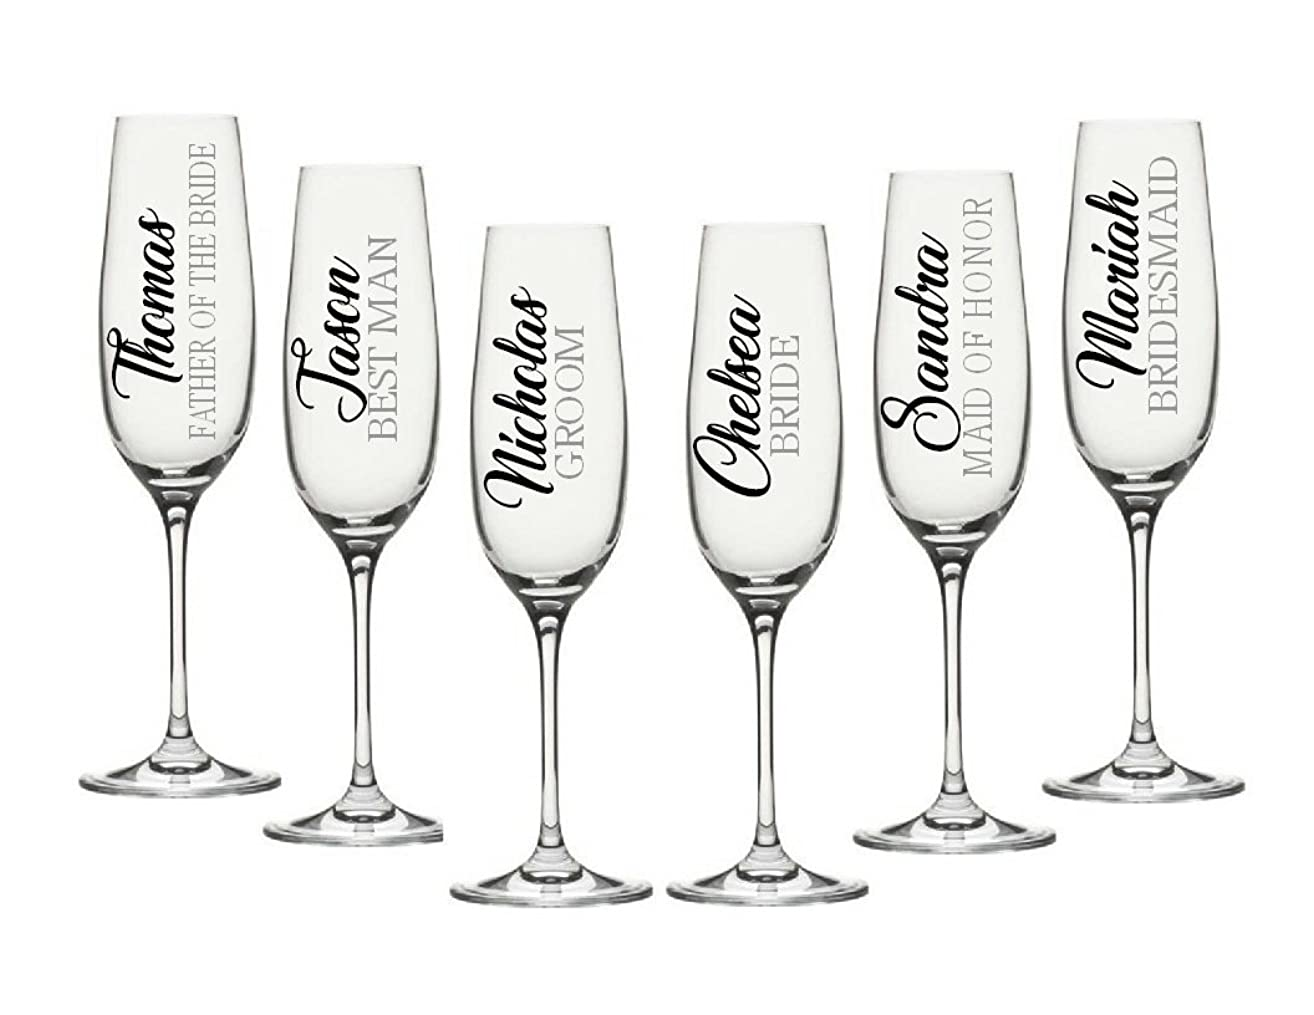 Wedding Party Decals. Champagne Flute Decals. Customize the color, name, and title. Decals Only. Perfect for your wine glasses, flasks, Yeti cups, bridesmaids gift, water bottle, etc.